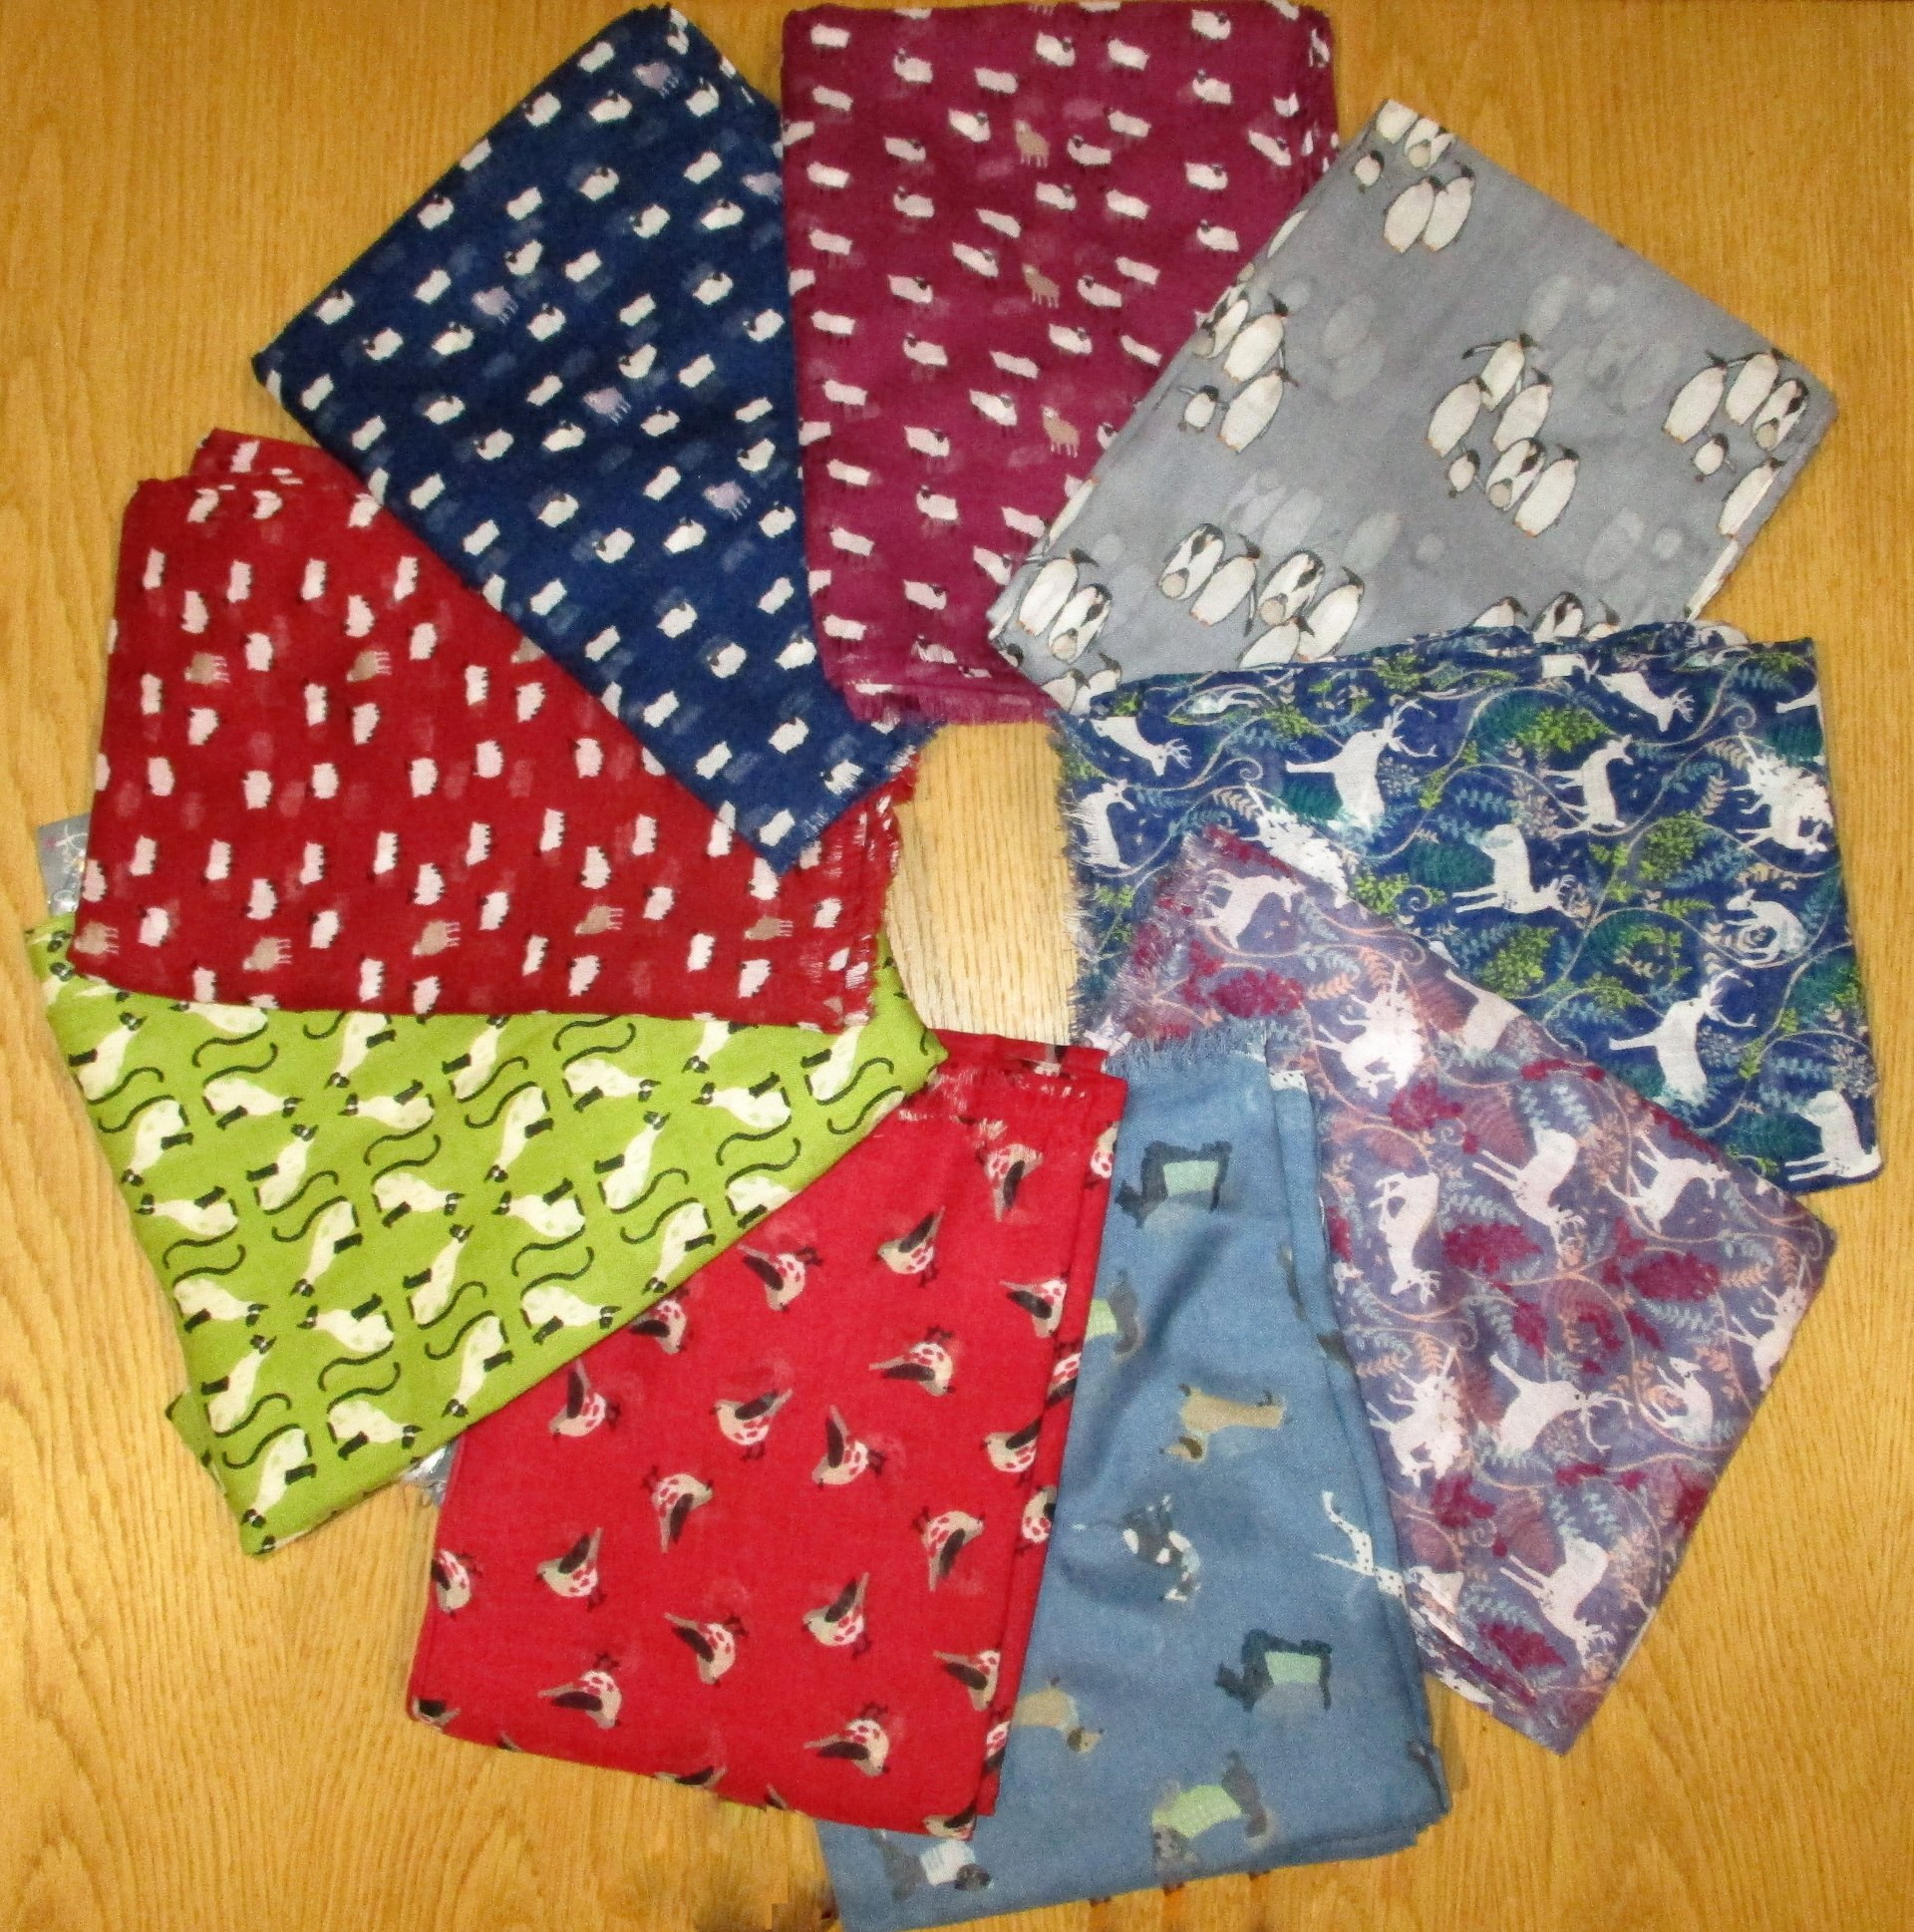 A selection of luxury scarfs in a variety of bright colours and designs including sheep, cats and dogs.